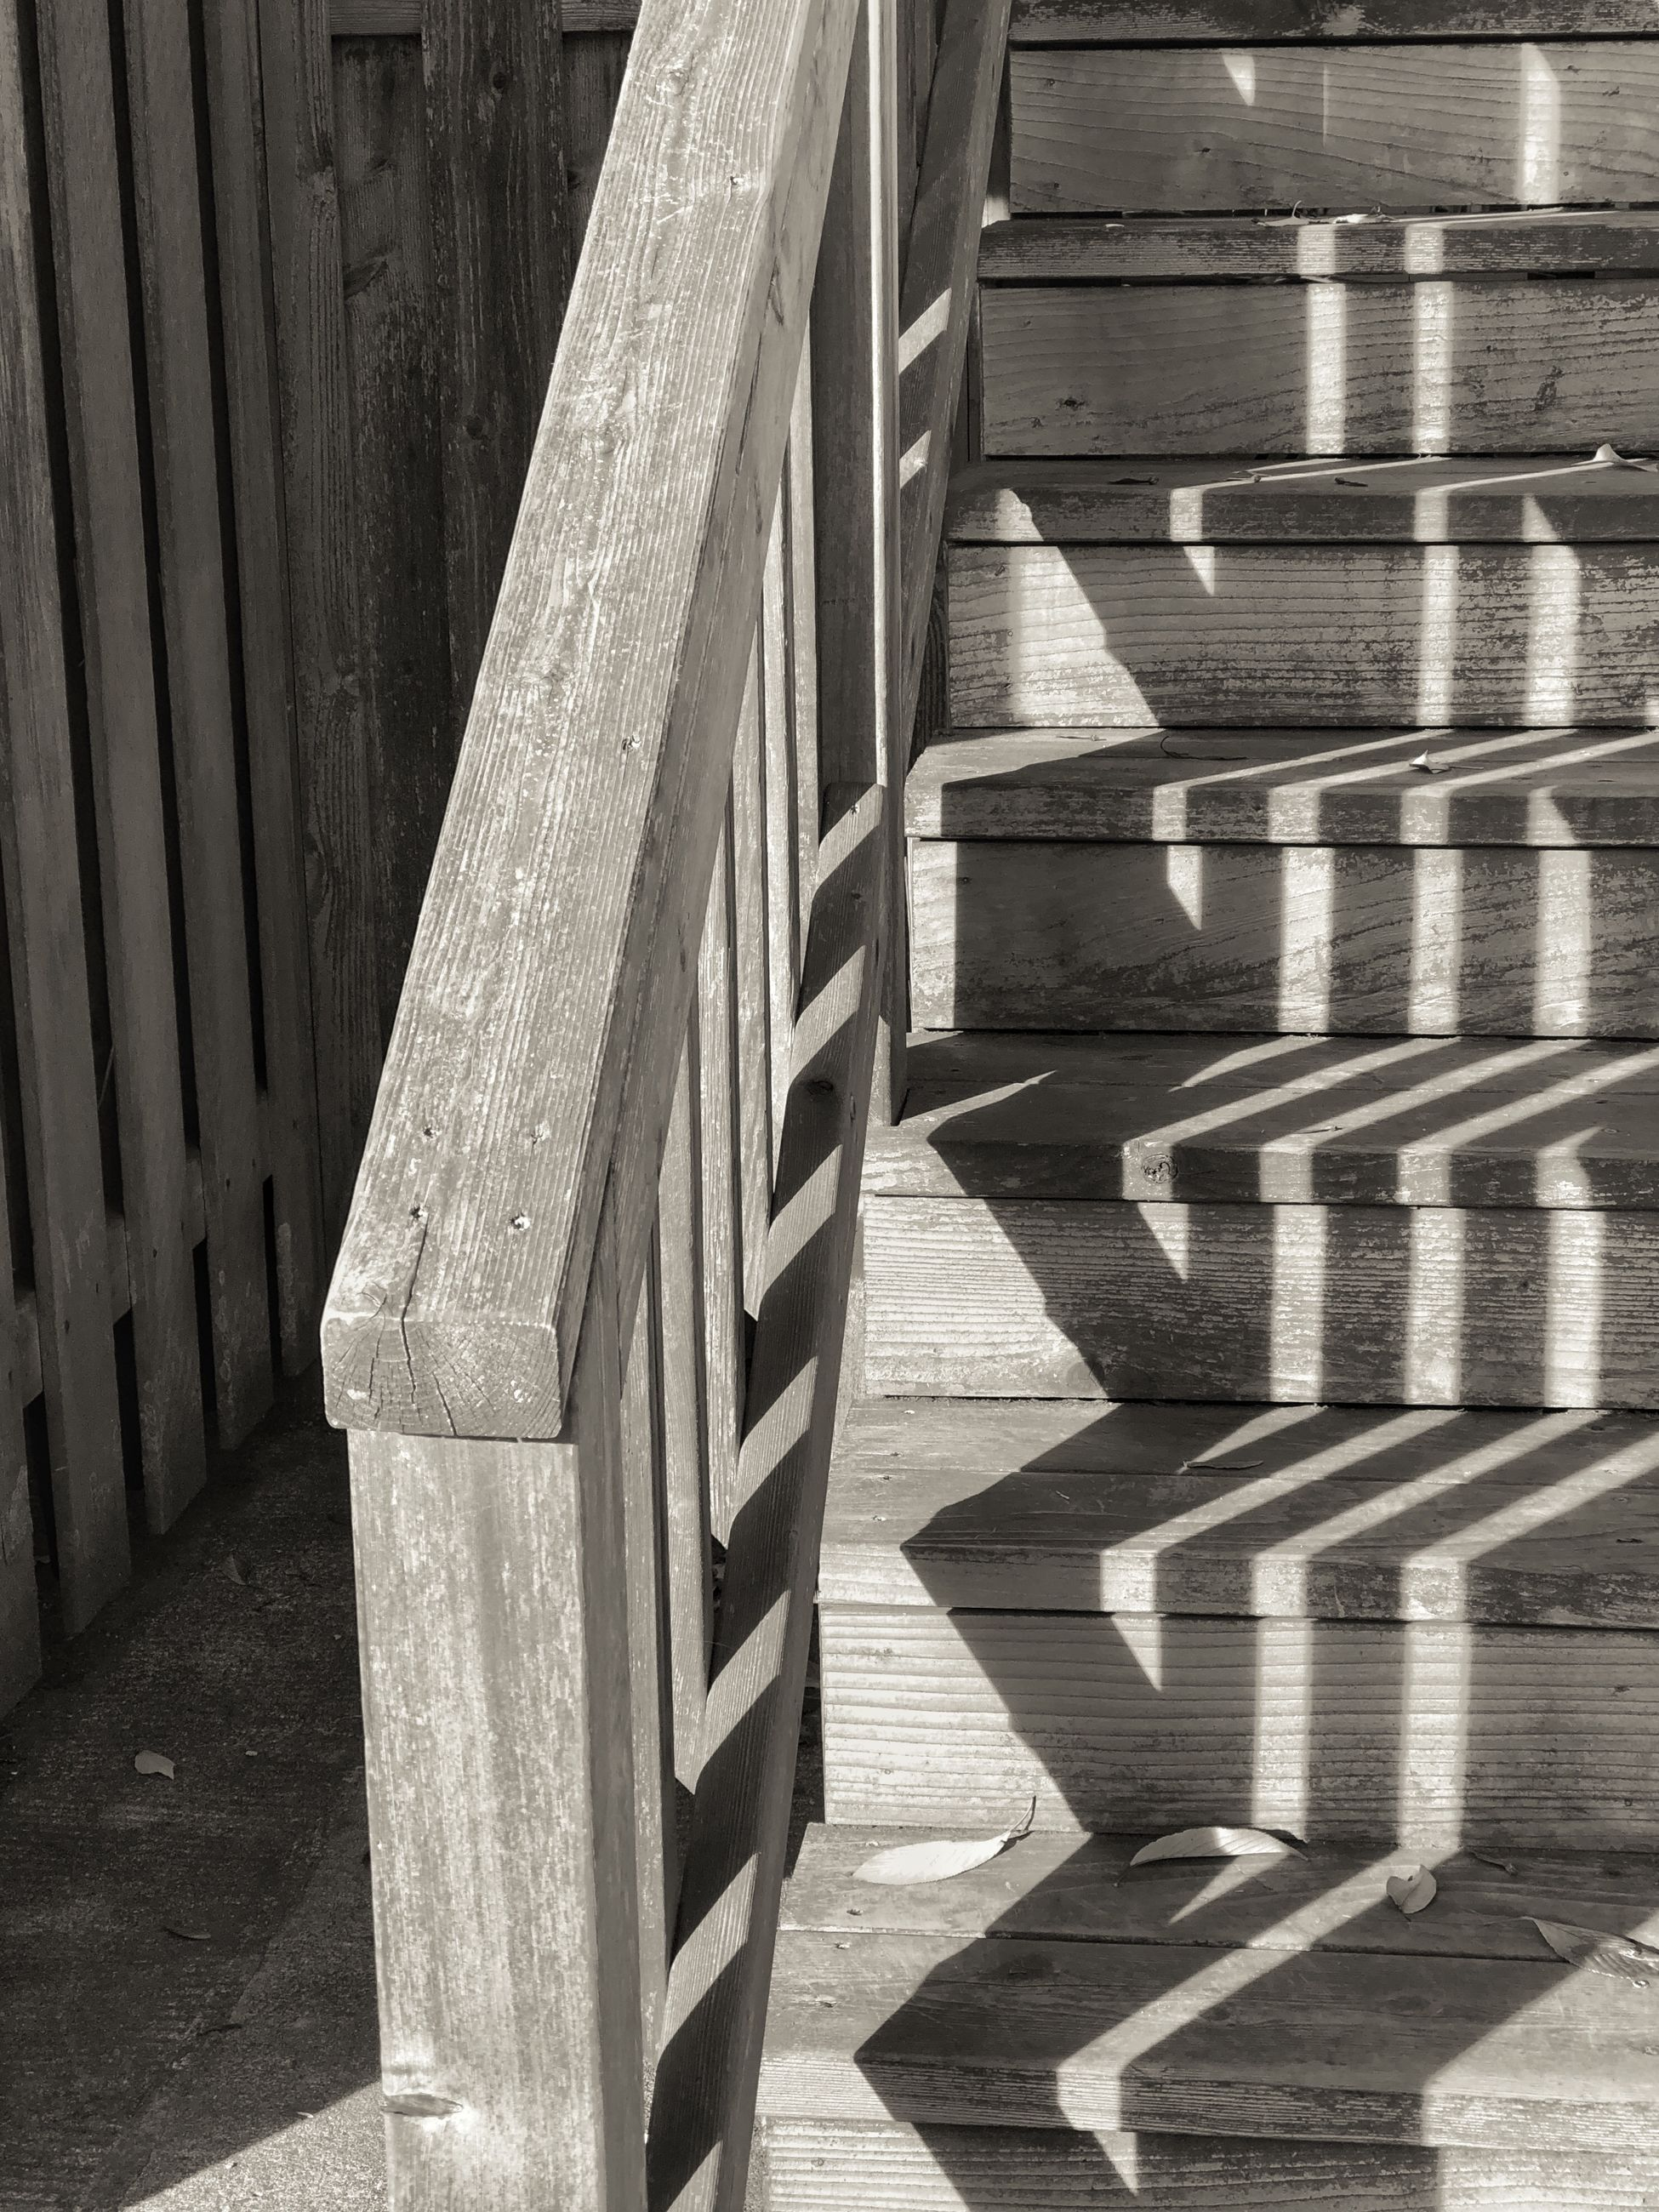 architecture, shadow, no people, sunlight, wood - material, built structure, day, pattern, staircase, railing, nature, steps and staircases, outdoors, absence, the way forward, building, metal, high angle view, footpath